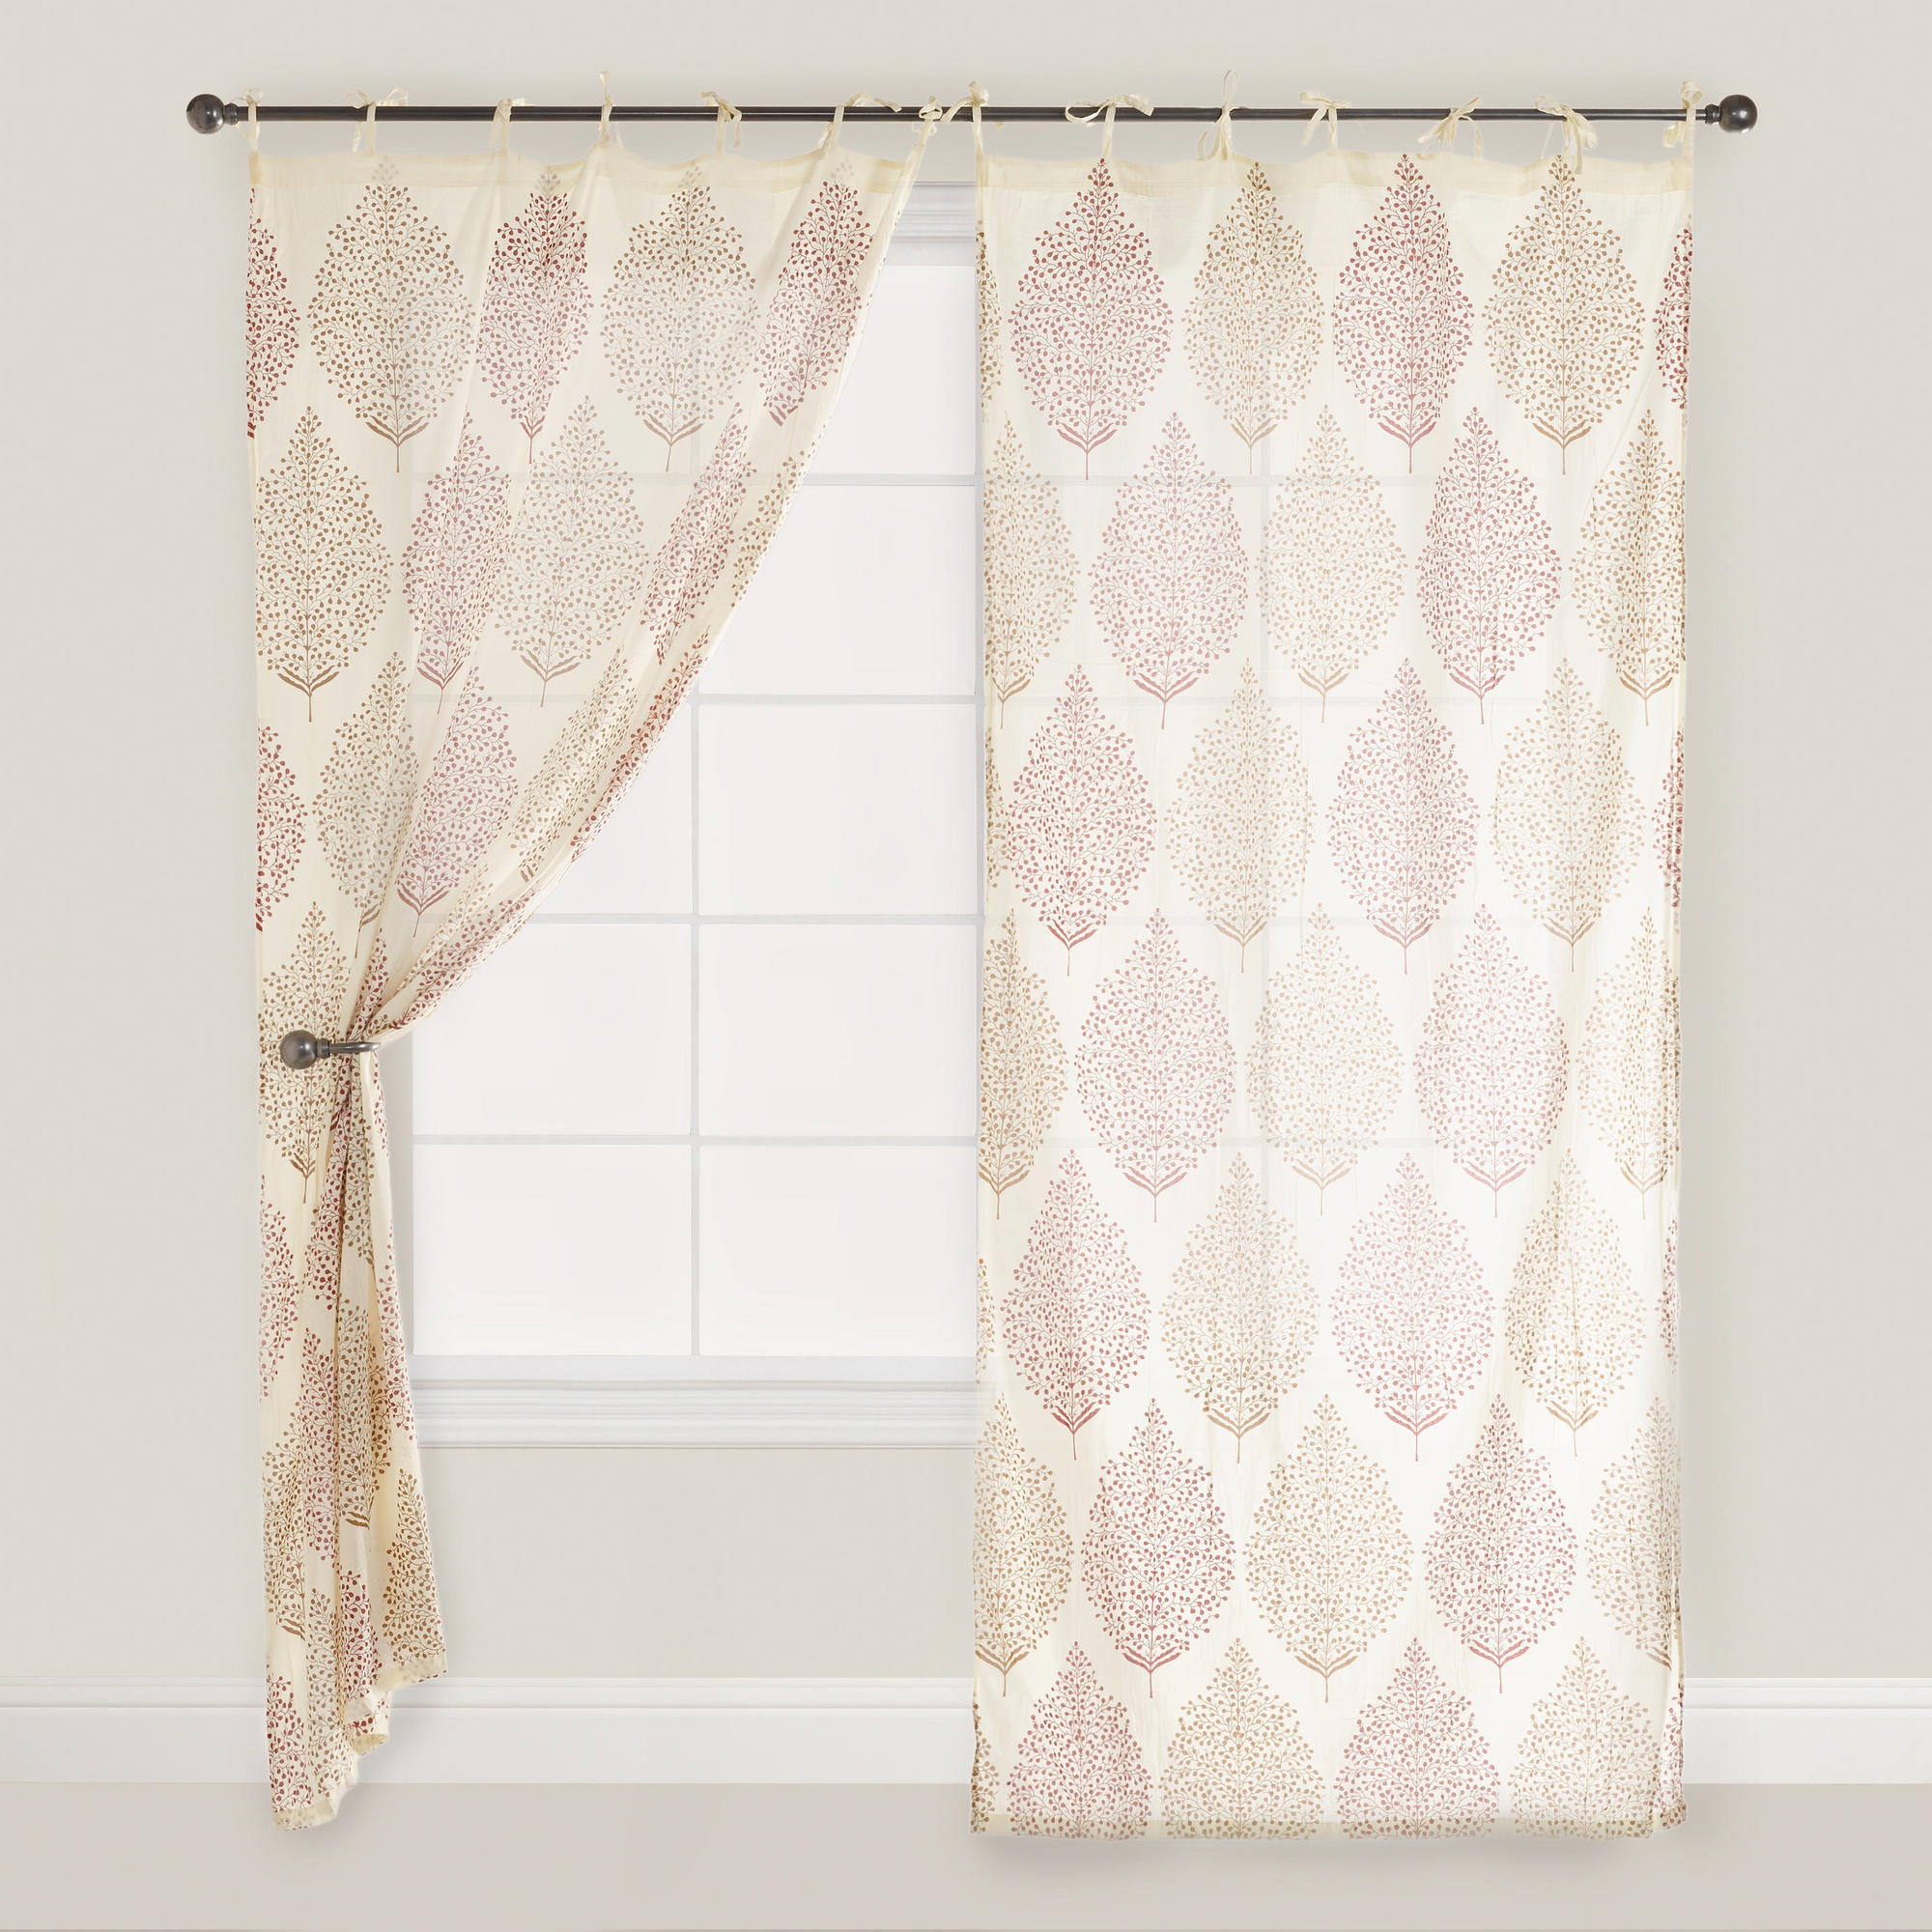 Rust Kashvi Patterned Crinkle Voile Curtain Voile Curtains With Moroccan Pattern Curtains (Image 14 of 15)